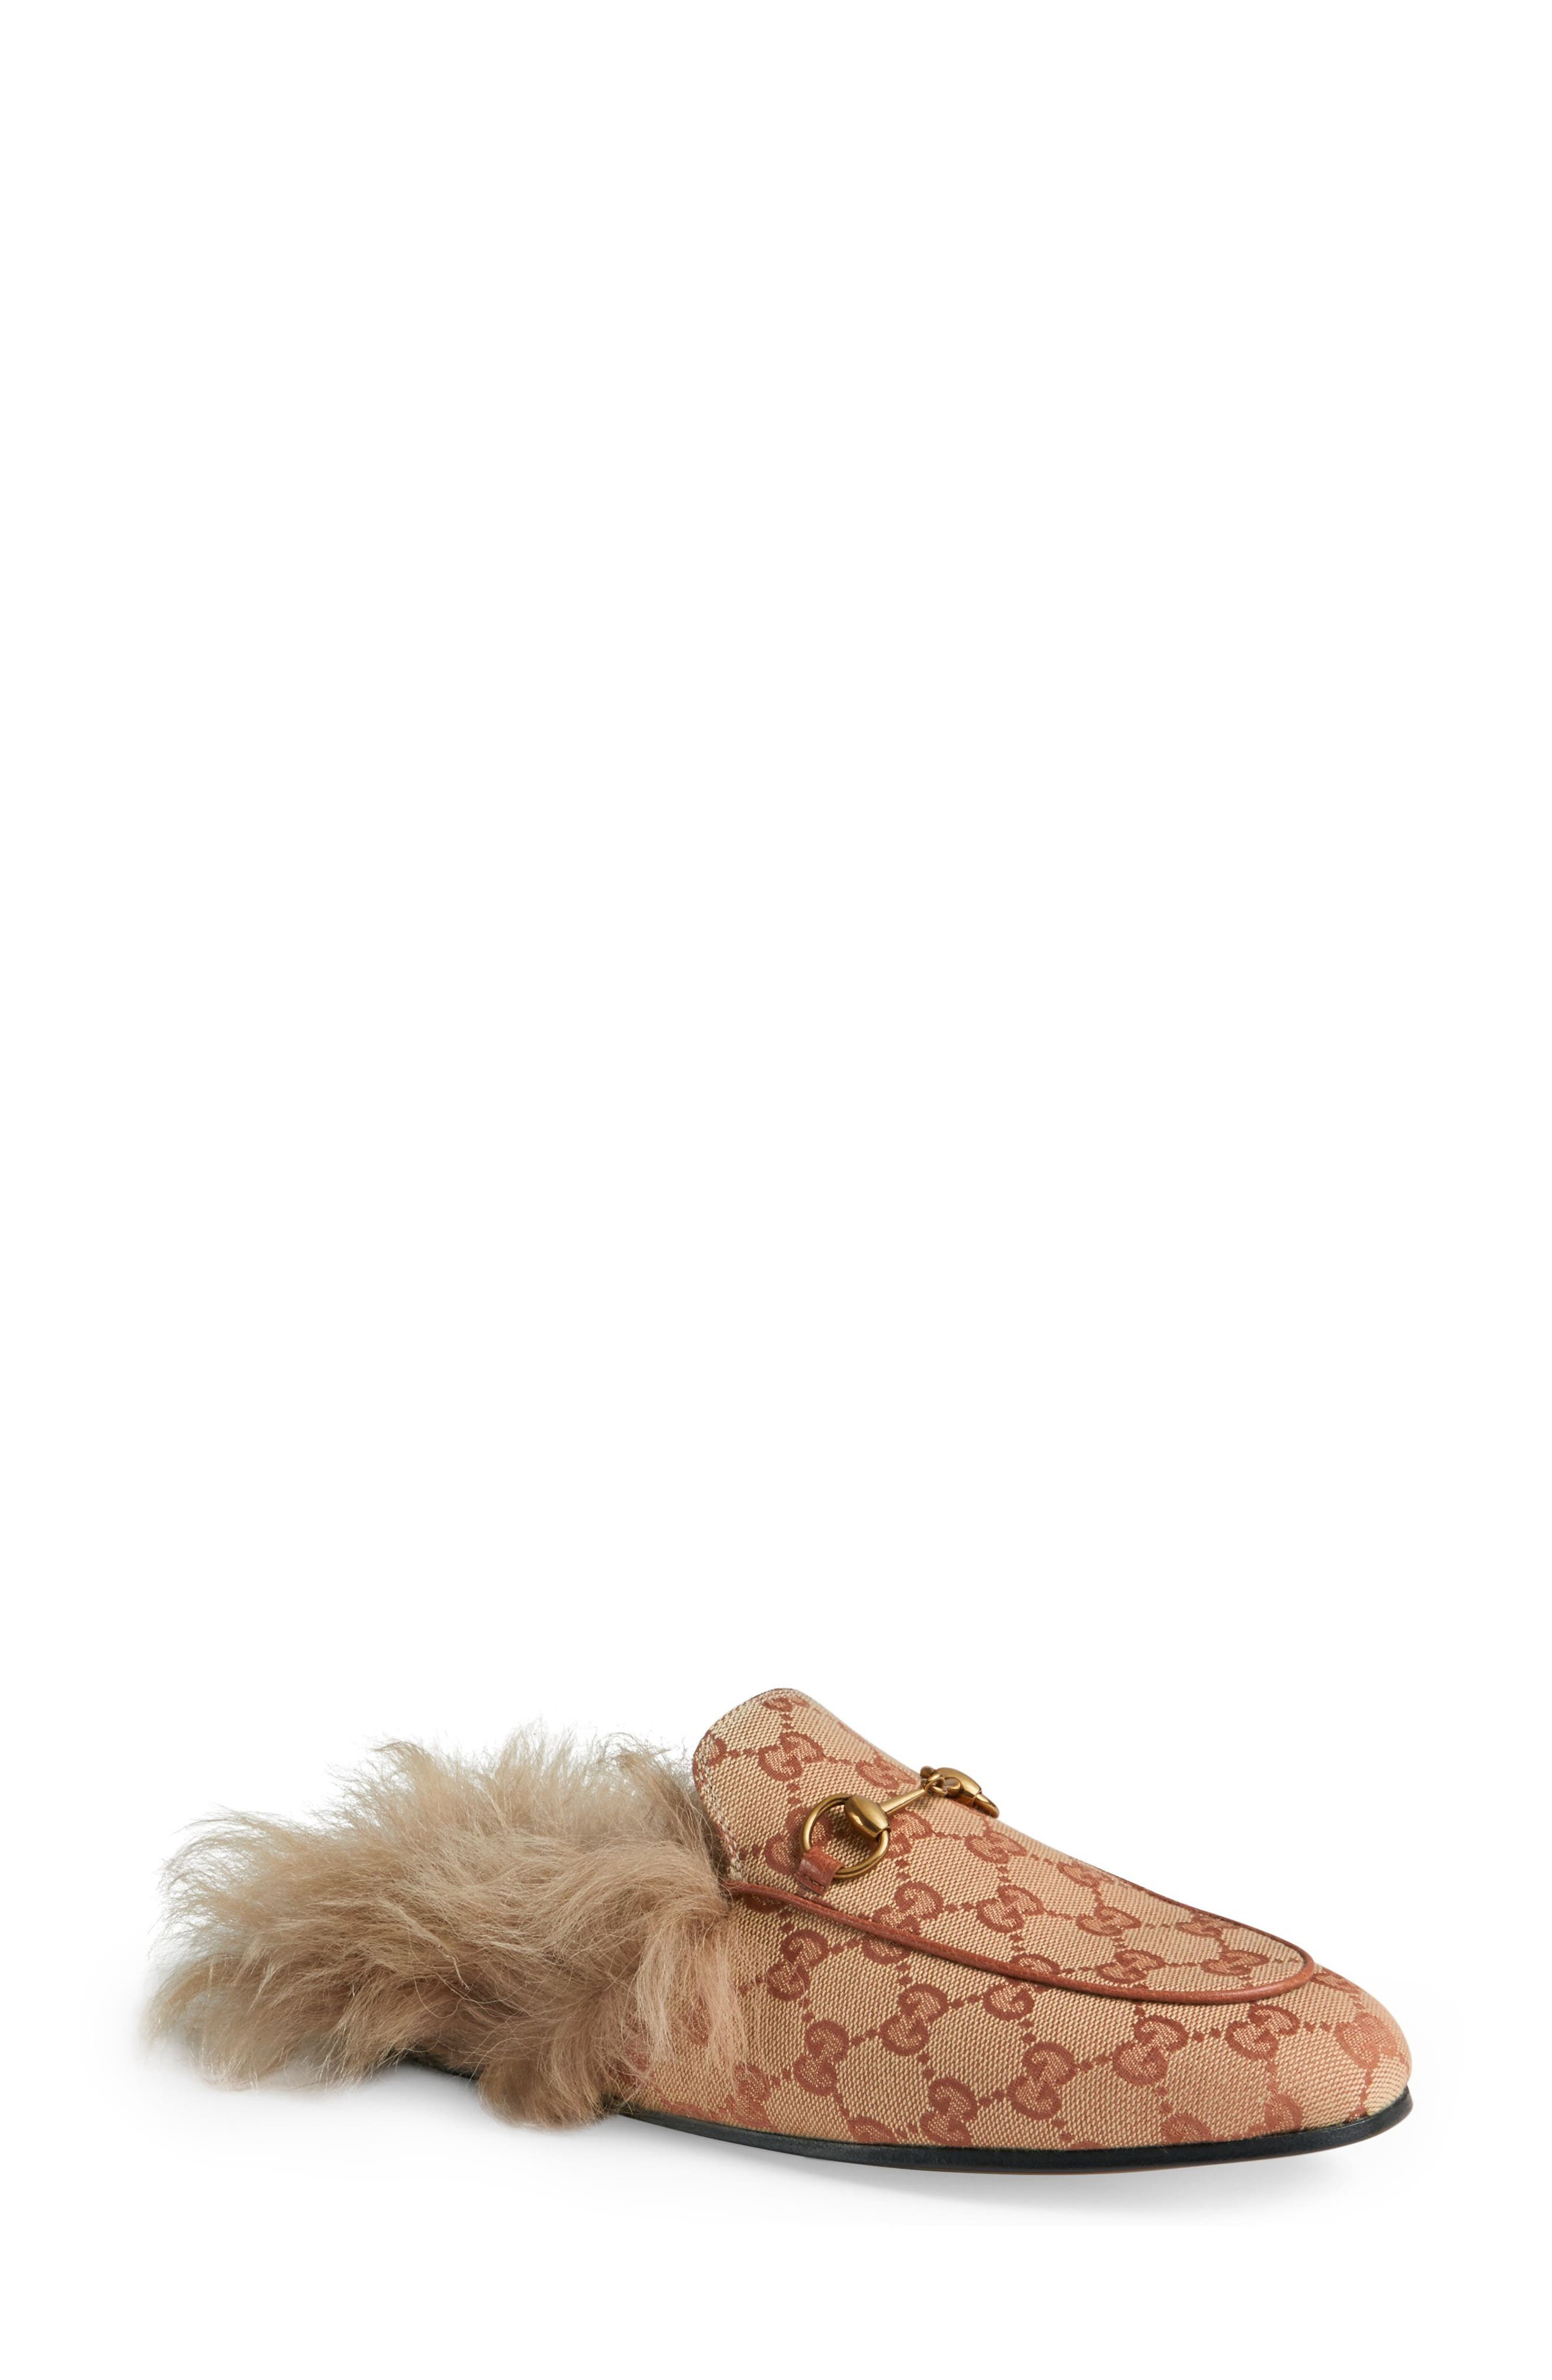 GUCCI, Princetown Genuine Shearling Logo Mule, Main thumbnail 1, color, BEIGE